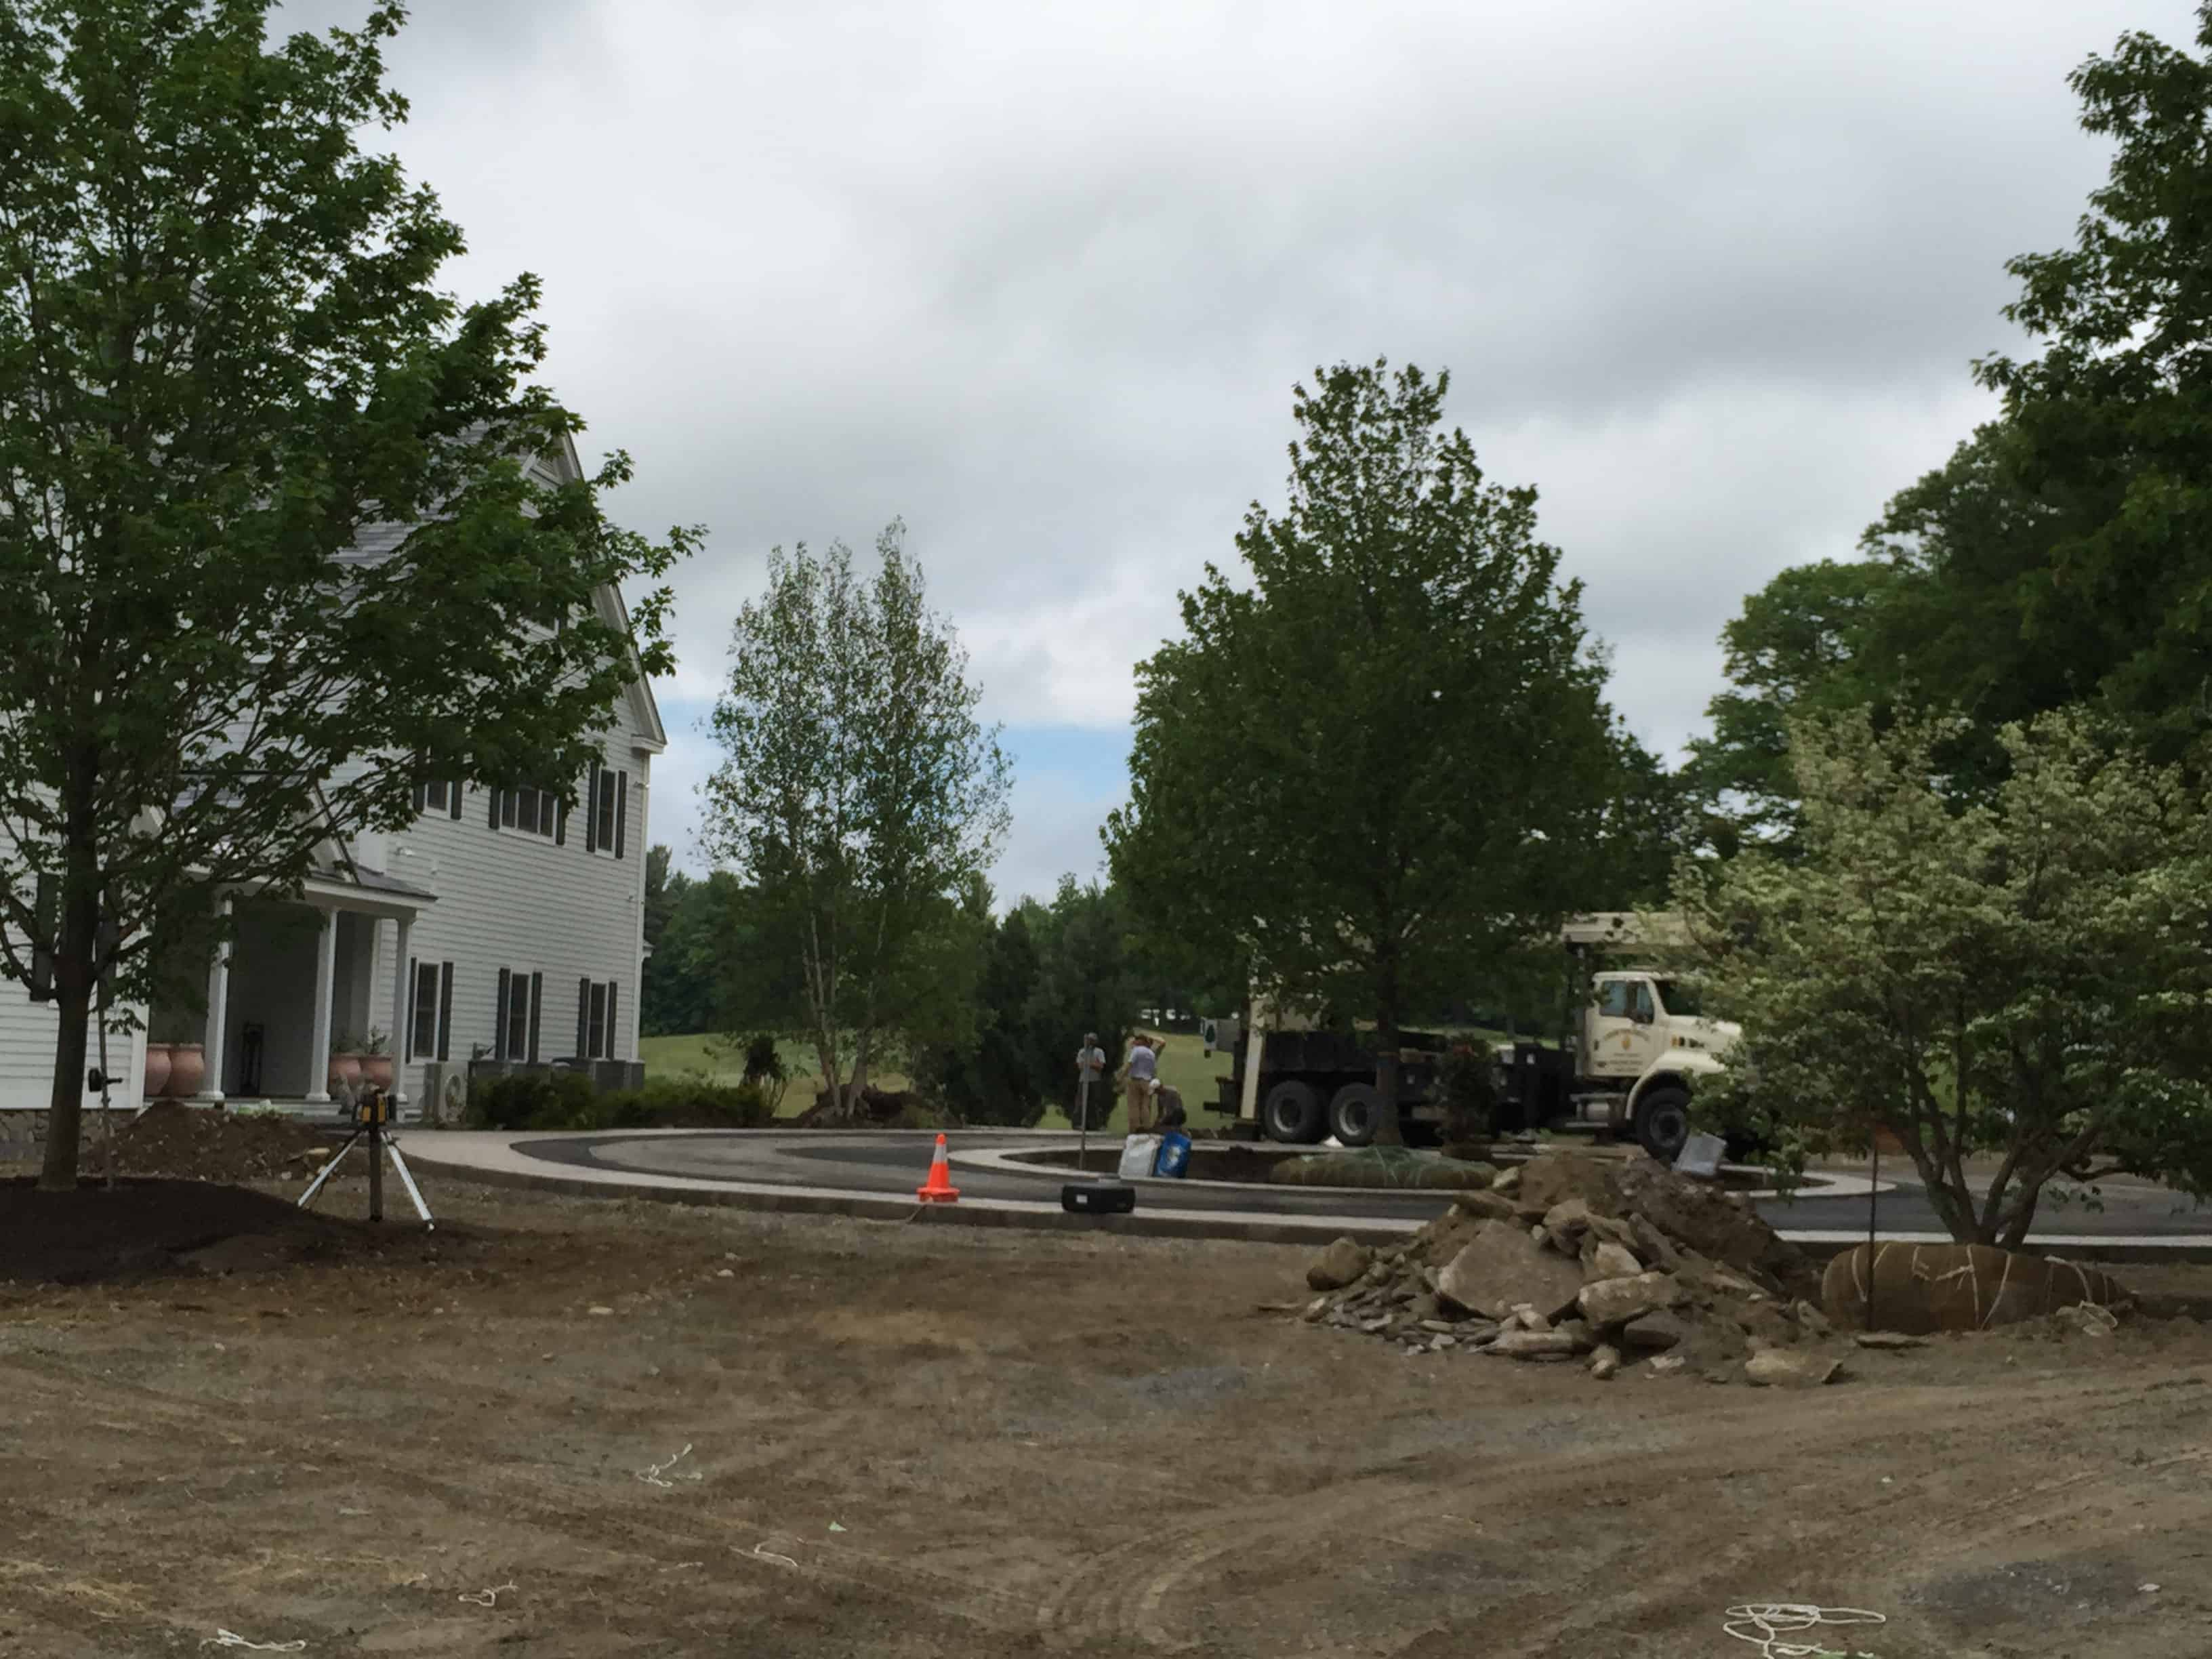 With the trees planted, the new landscape will look settled and mature.